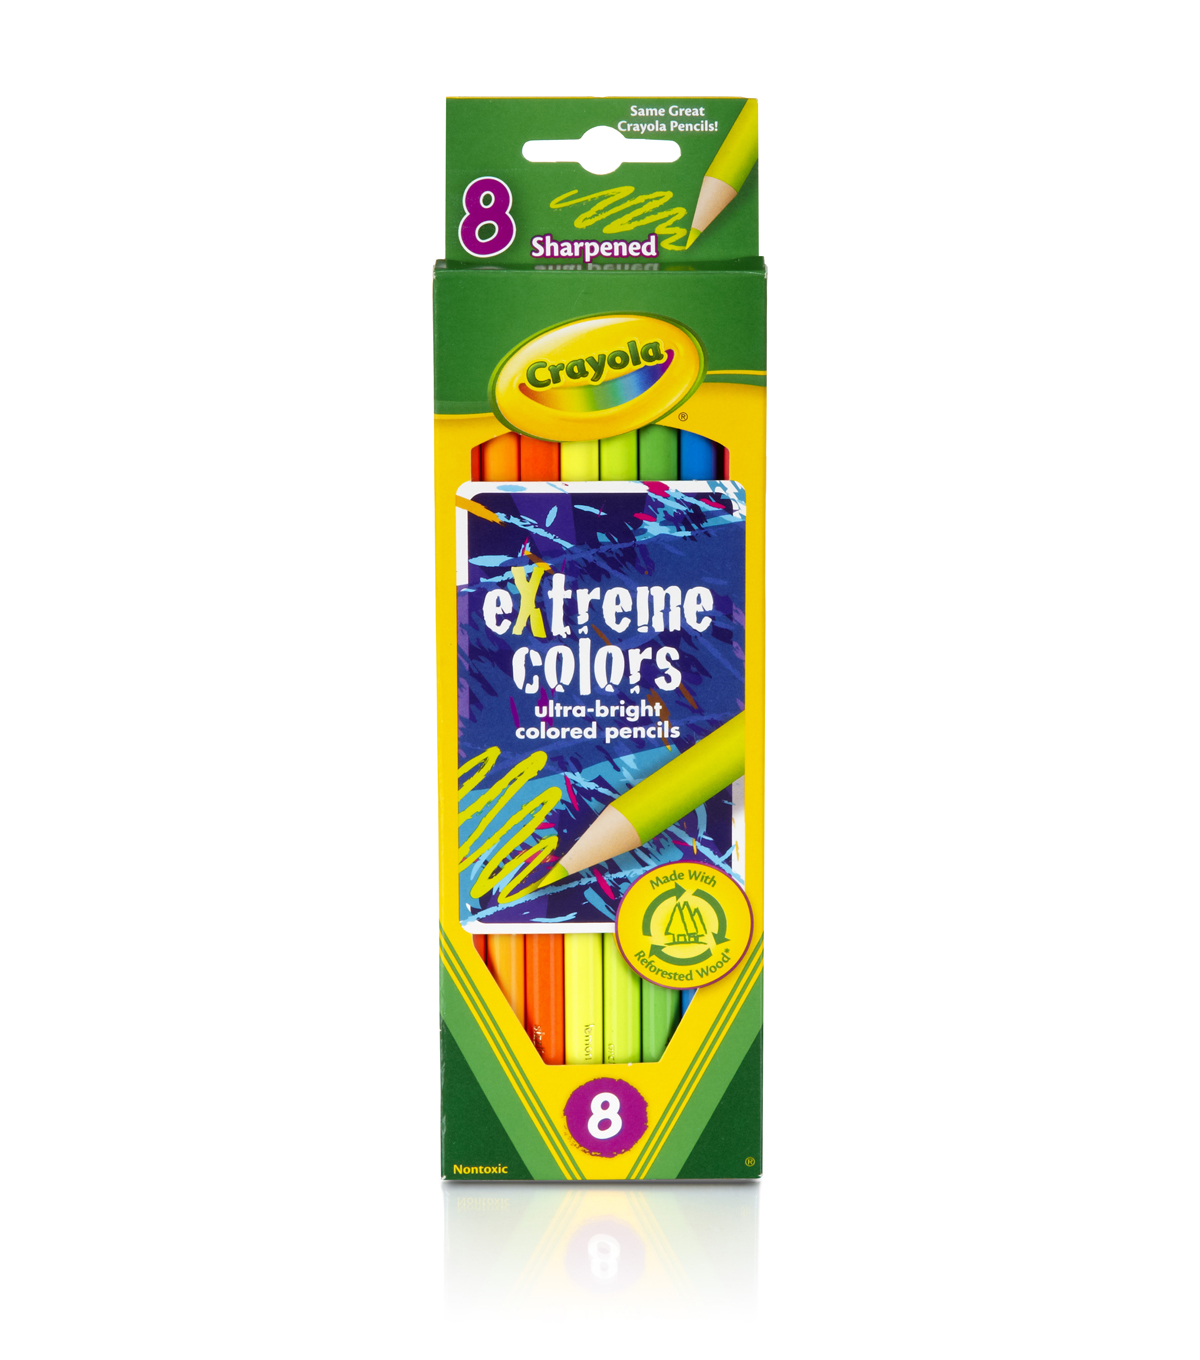 Crayola Extreme Colored Pencils-8/Pkg Long